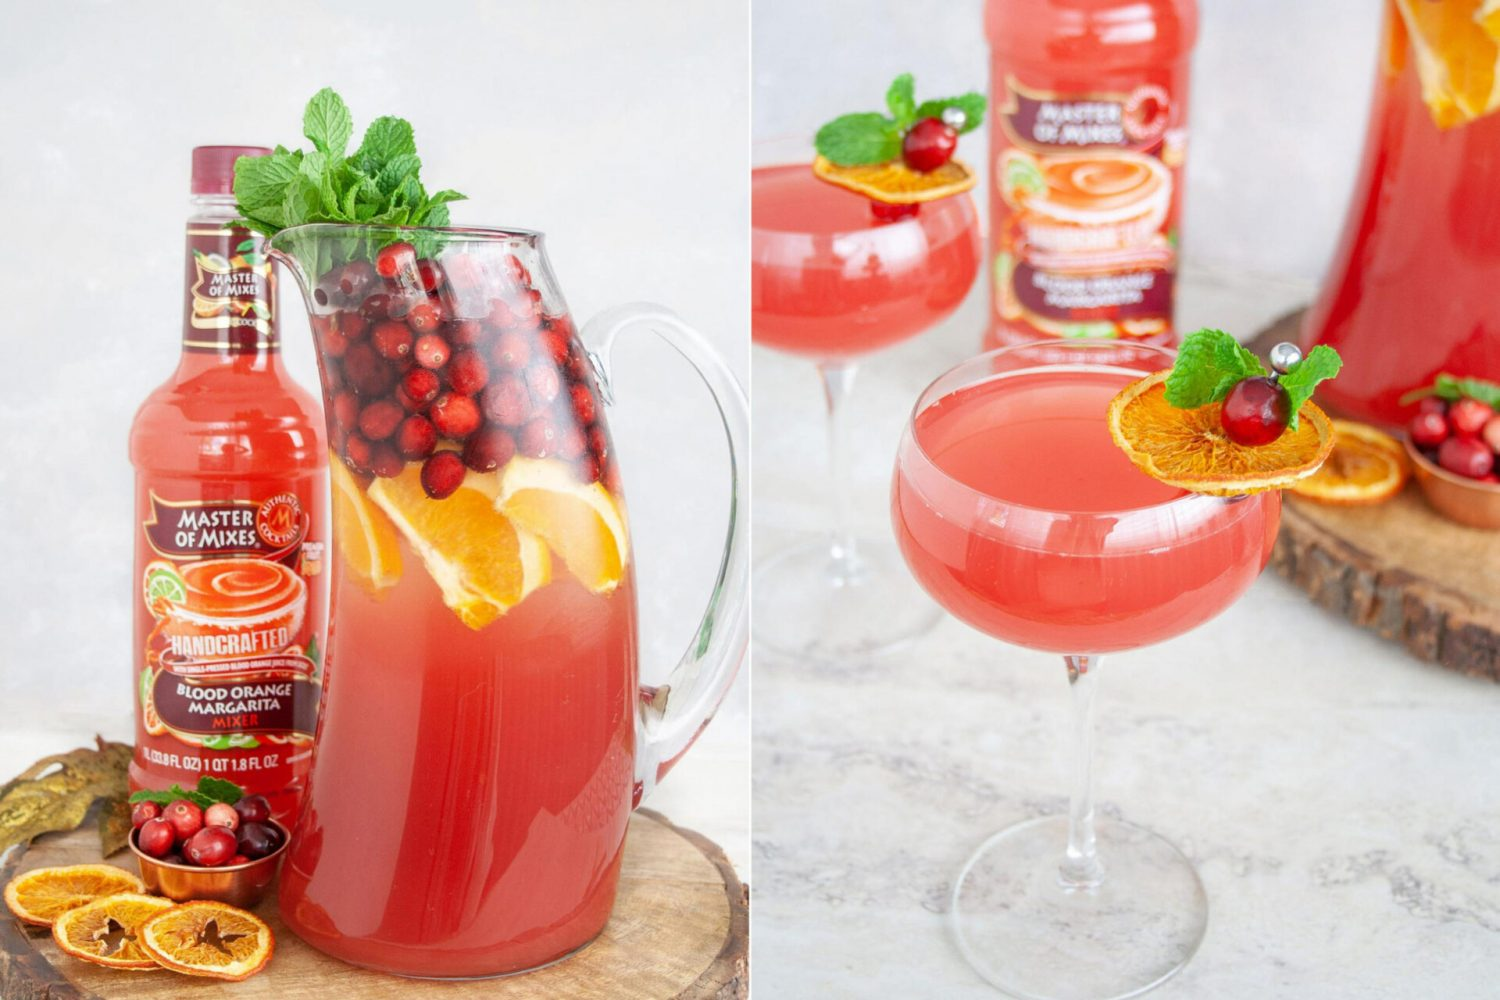 Blood Orange and Cranberry Punch is a gin cocktail made with Master of Mixes Blood Orange Margarita Mix that is a perfect Thanksgiving cocktail. This bubbly punch has notes of cranberry, mint, and citrus for a refreshing and light sip. #sponsored #MasterofMixes #Cocktail #Thanksgiving ThanksgivingPunch #punch